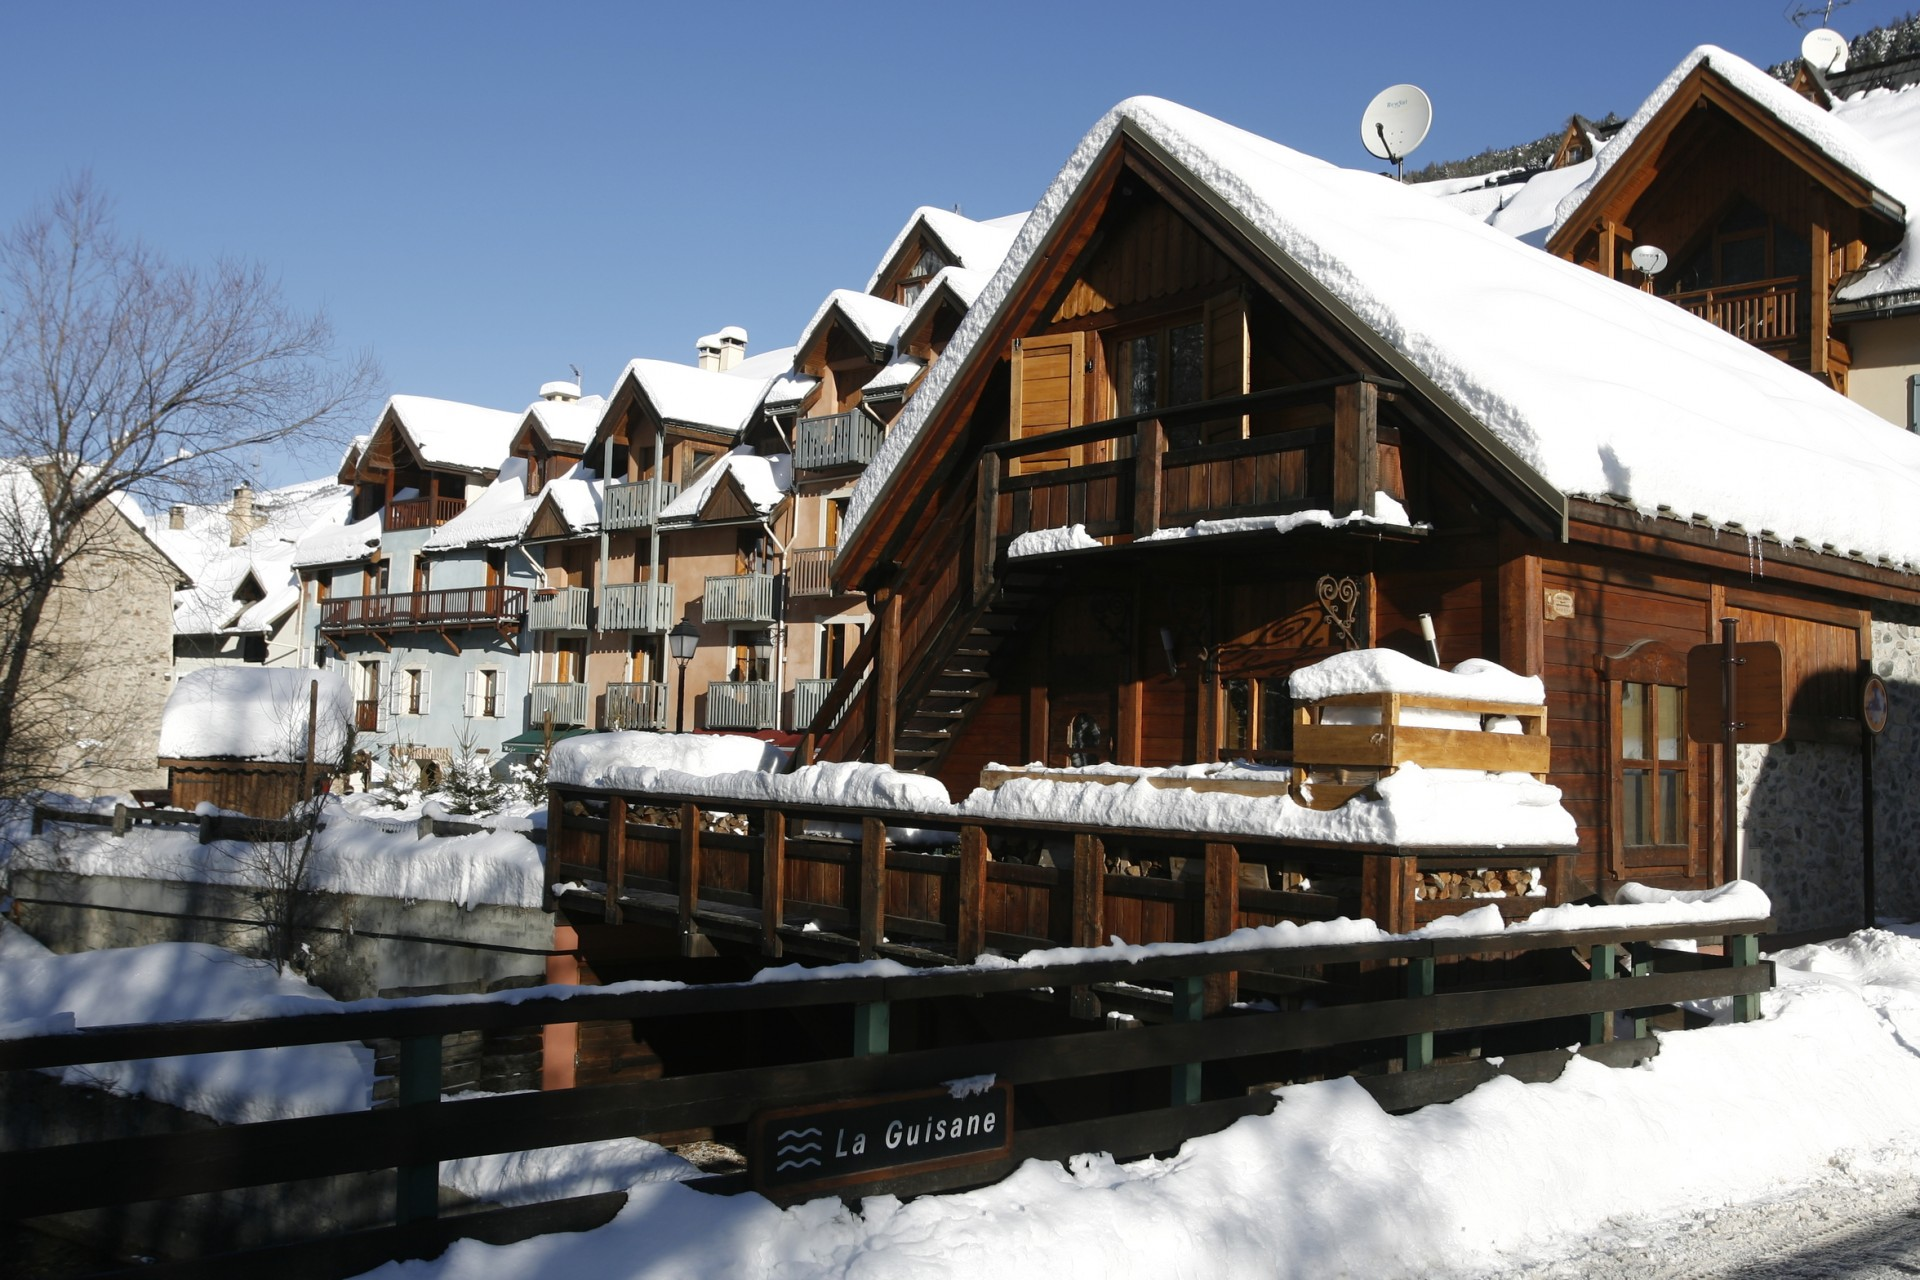 Self-catering accommodation Serre Chevalier Villeneuve